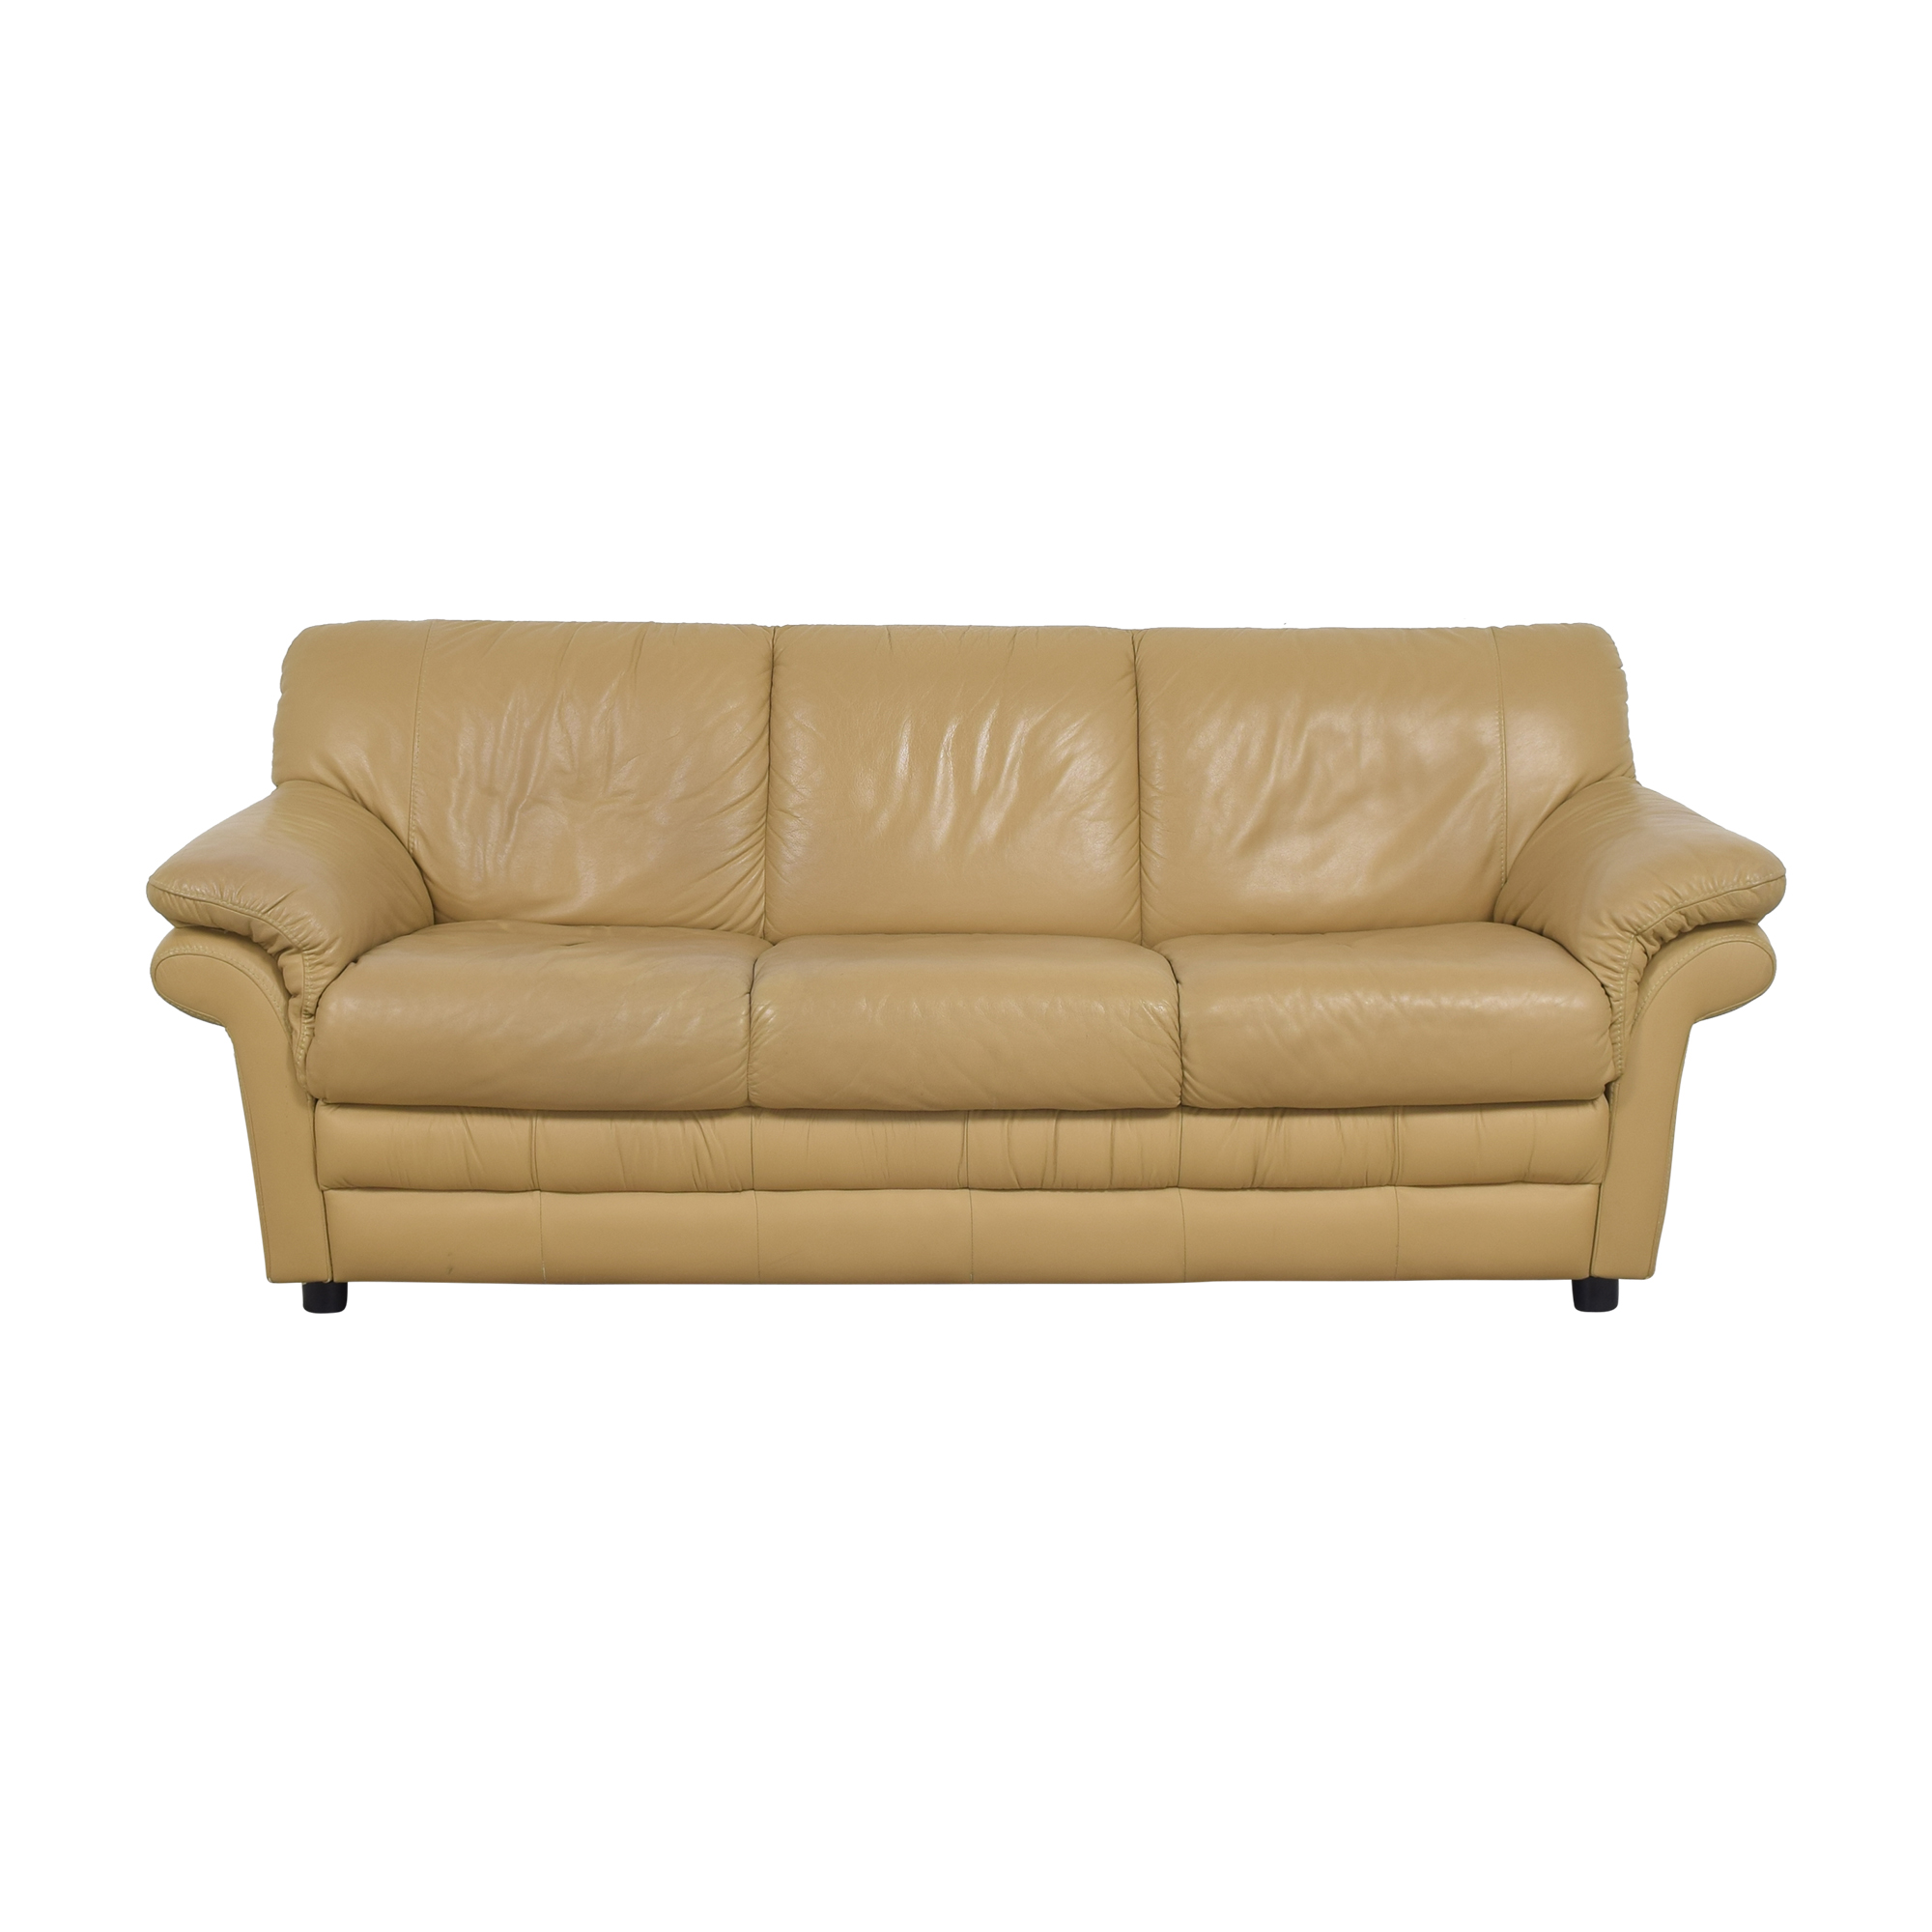 Three Cushion Sofa on sale